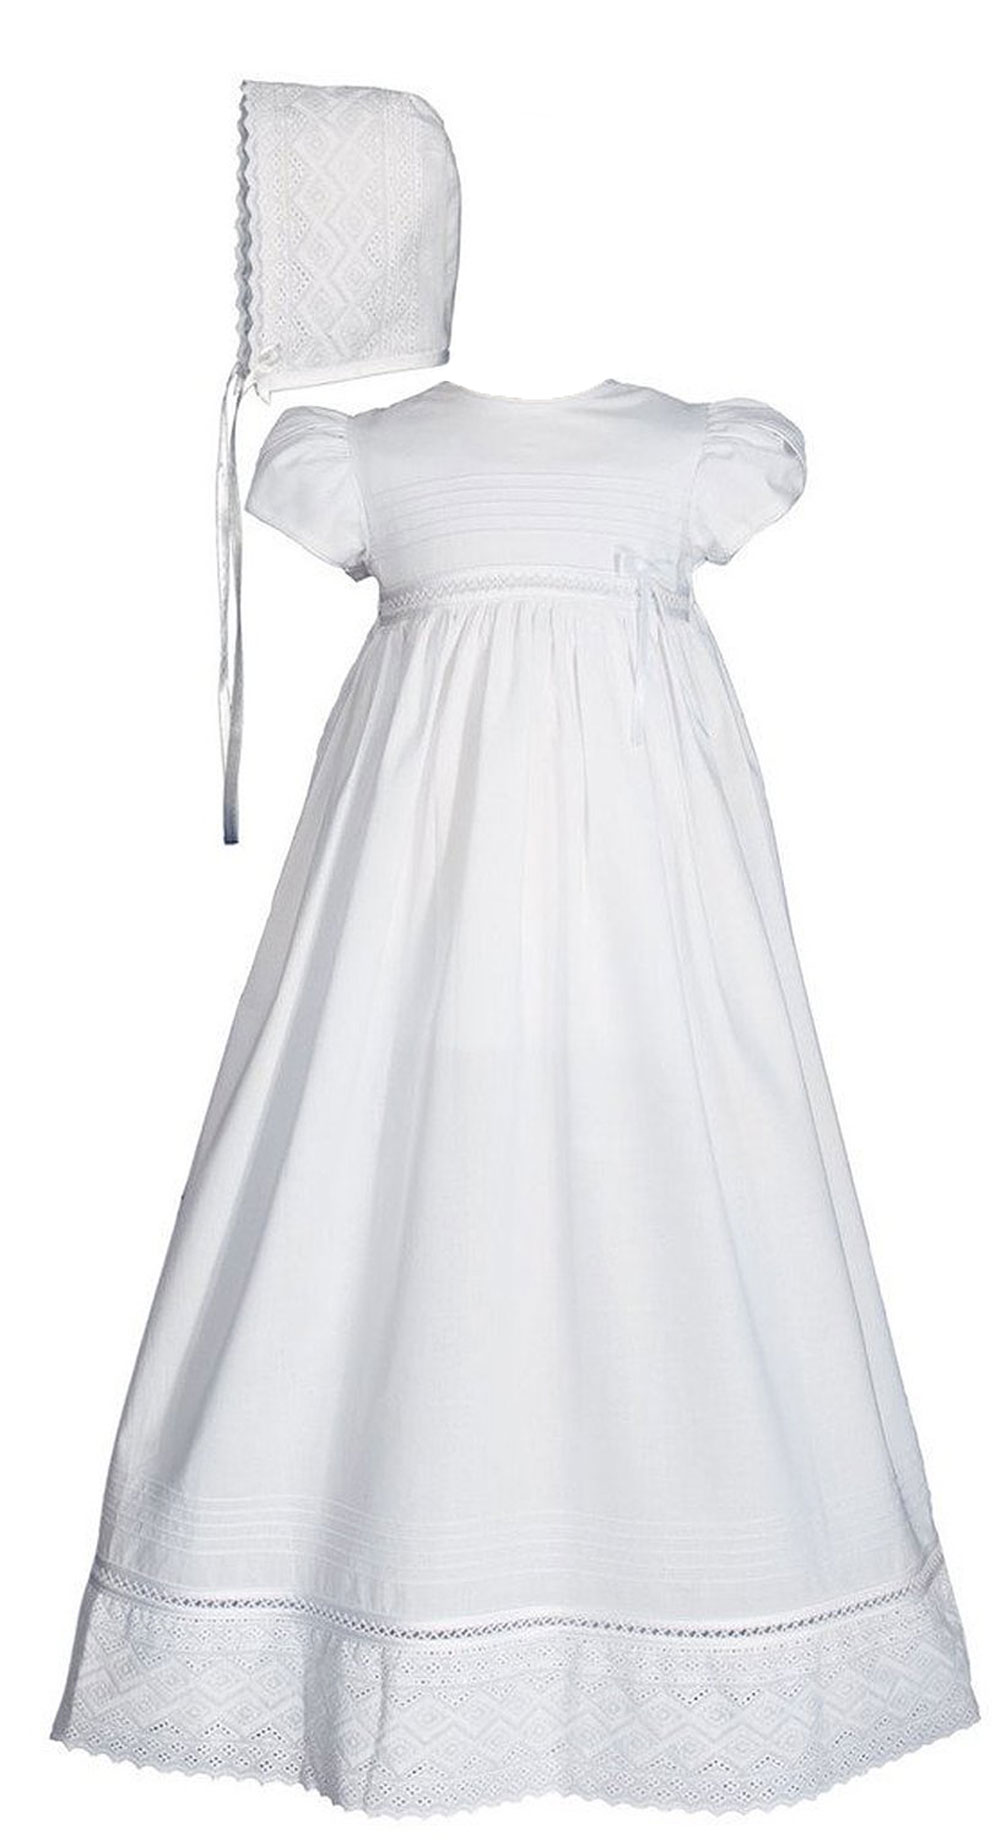 Girls 30 Quot White Cotton Dress Christening Gown Baptism Gown